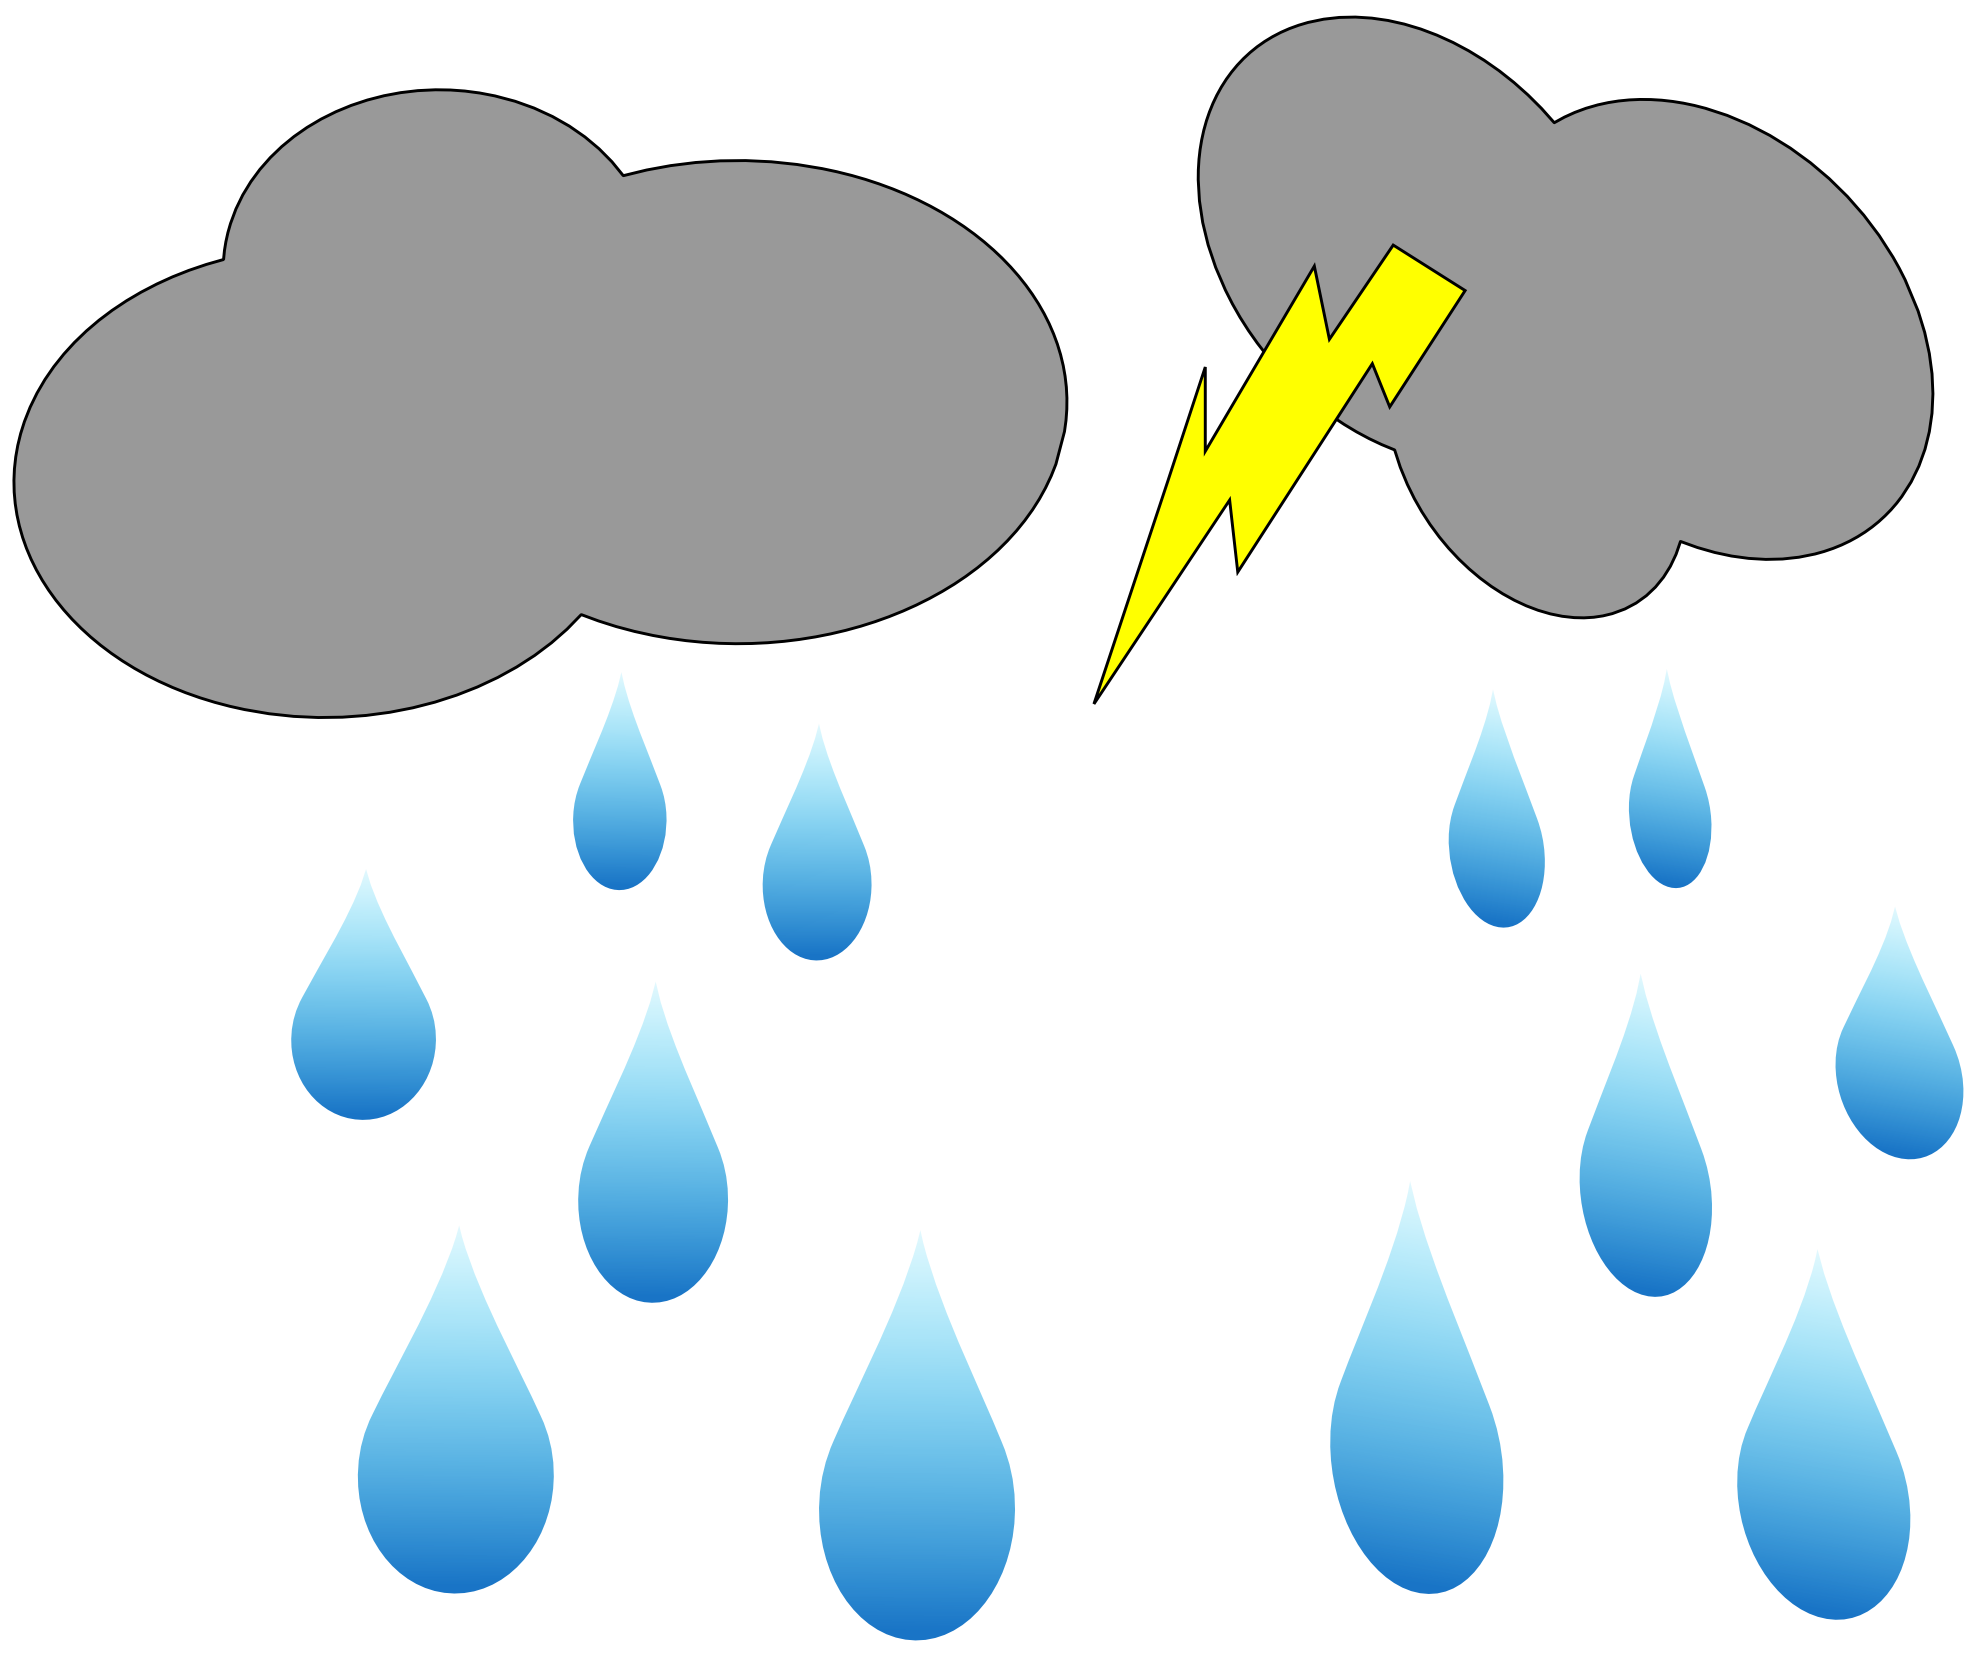 Free Rain Clouds Clipart, Download Free Clip Art, Free Clip.